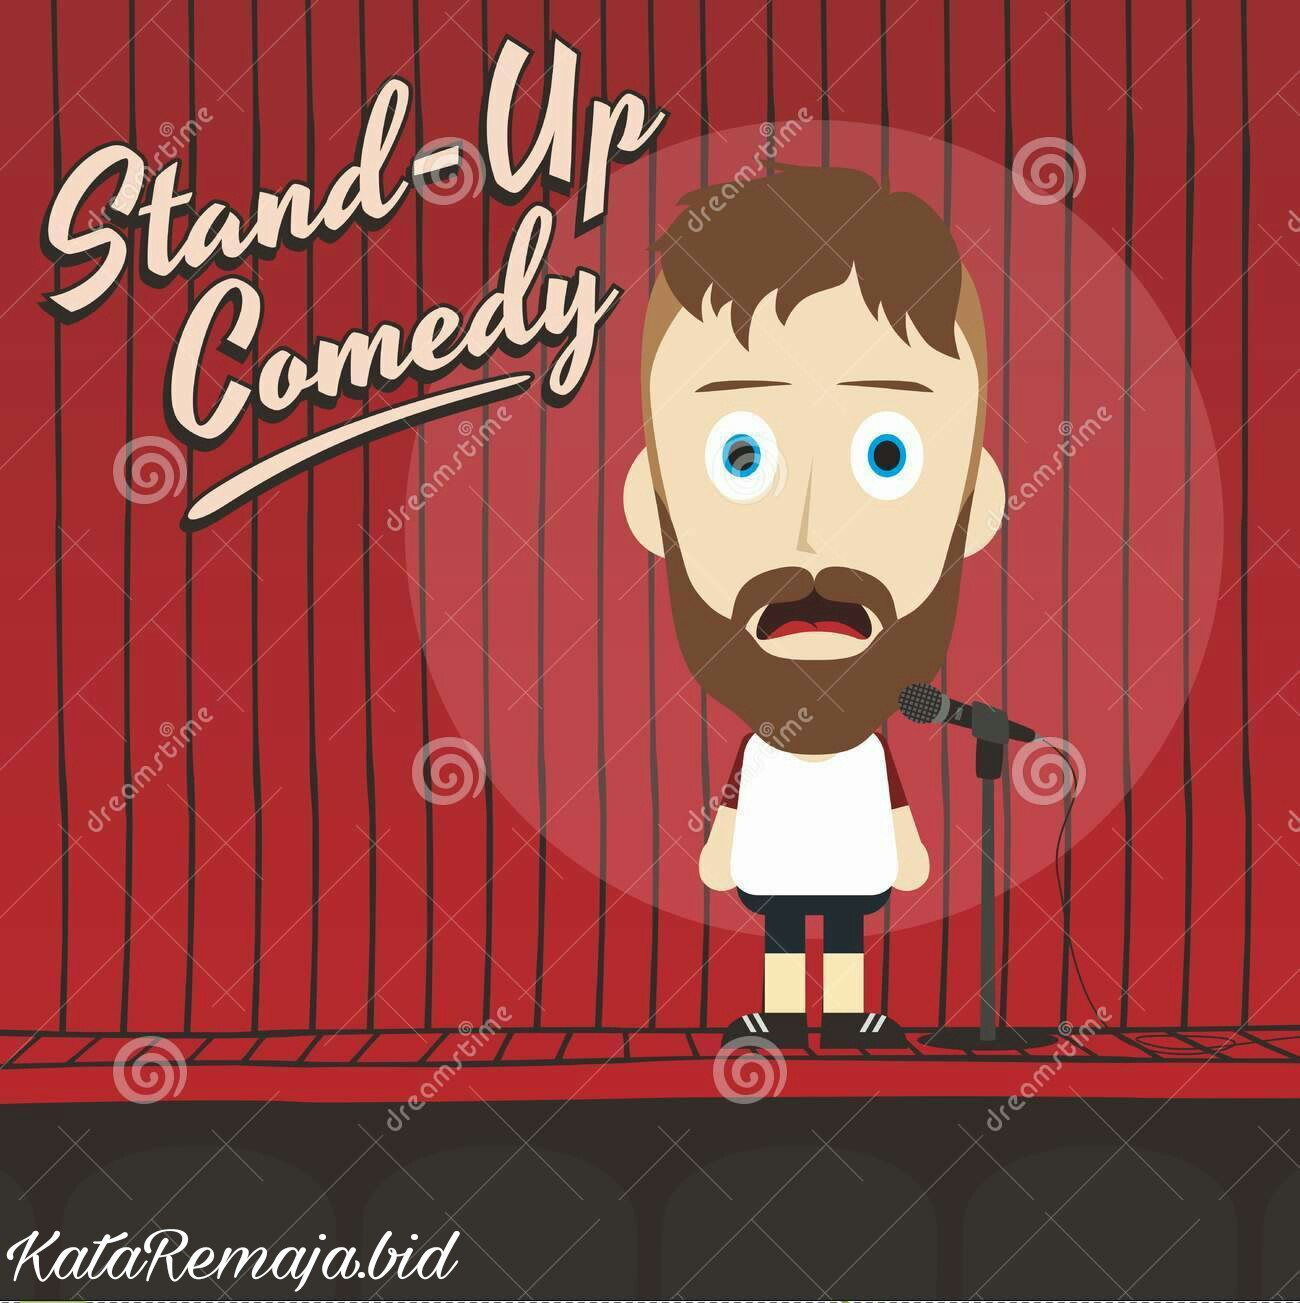 naskah stand up comedy